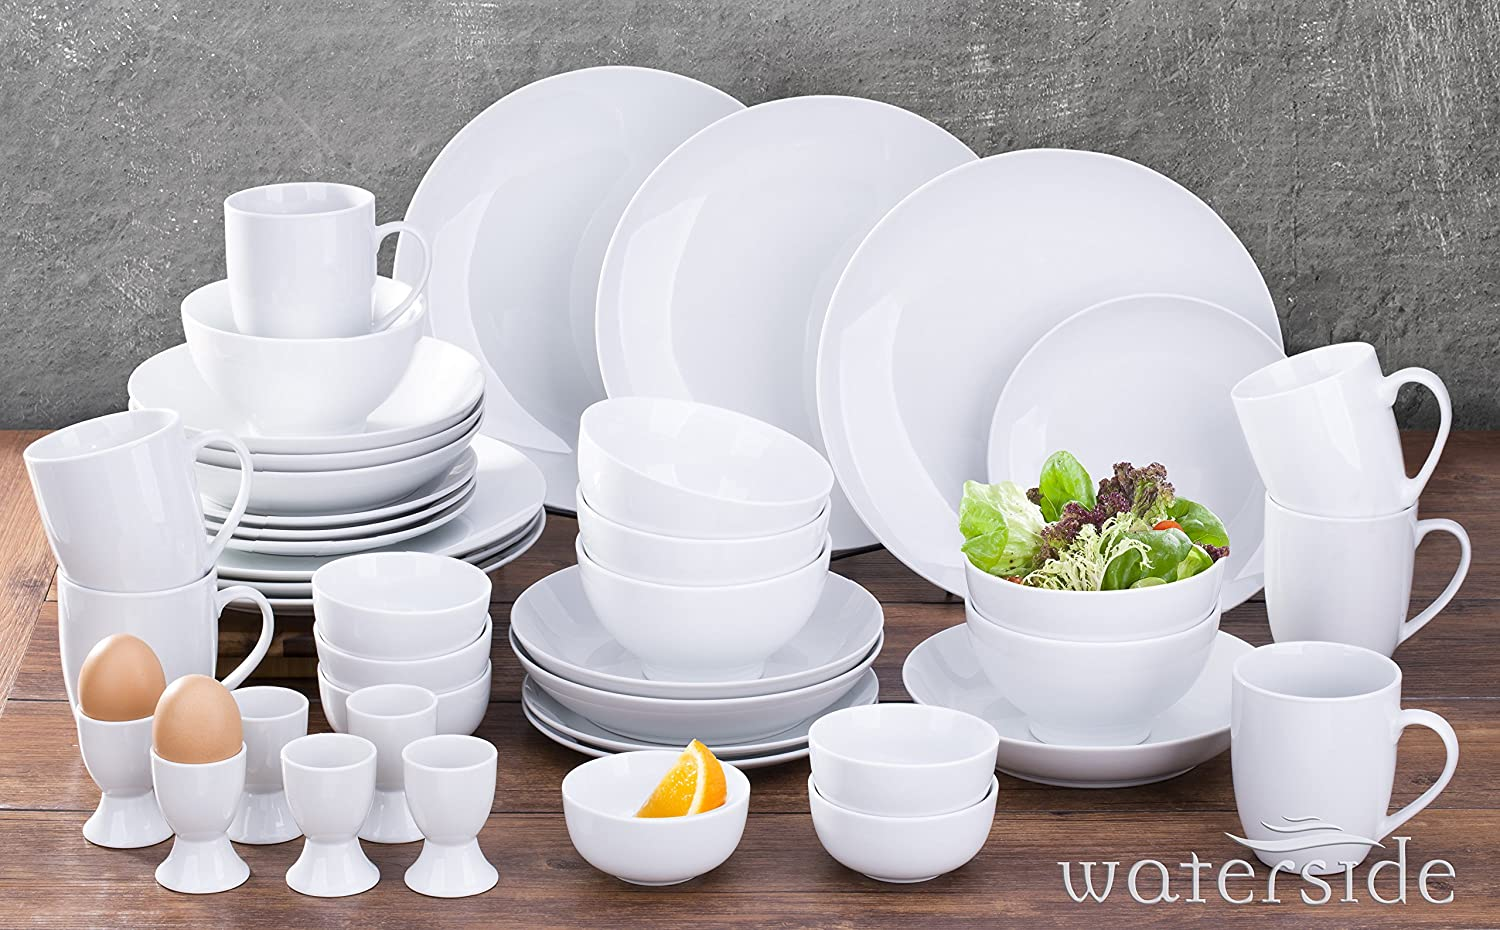 42 Piece Simply White Coupe Dinner Set Waterside Fine China